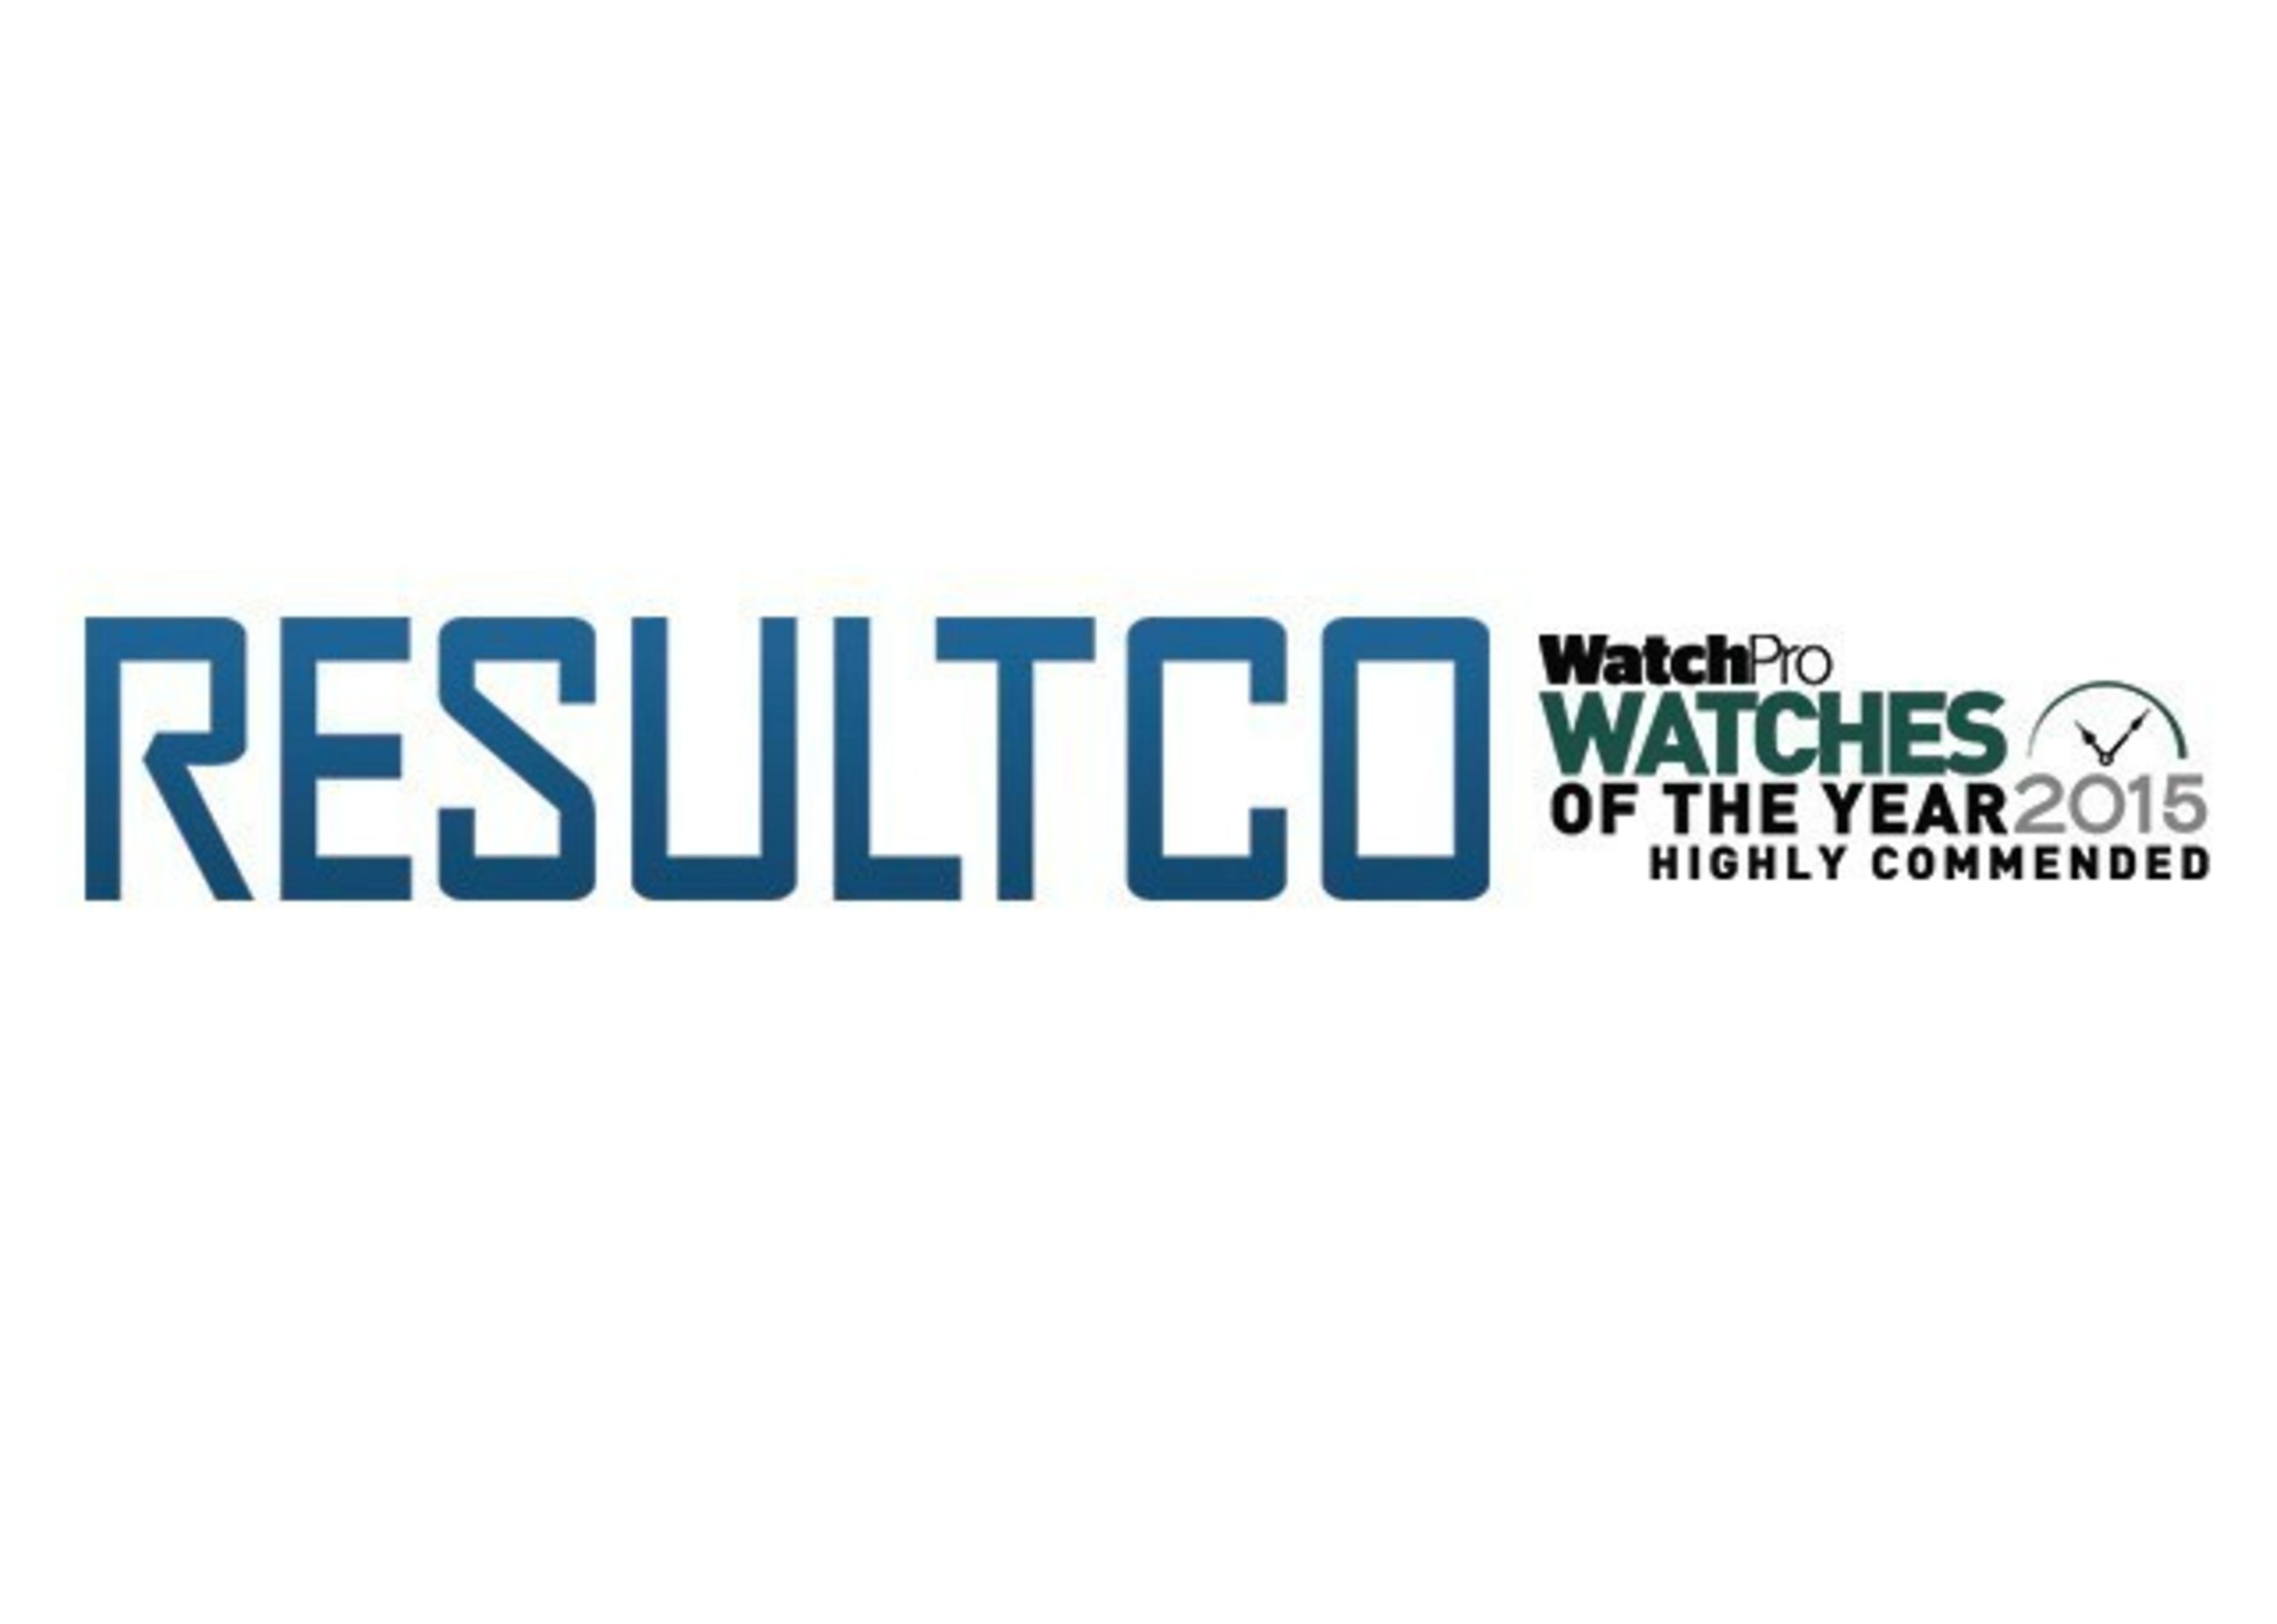 WatchPro Magazine Highly Commended RESULTCO as Rising Star of the Year 2015